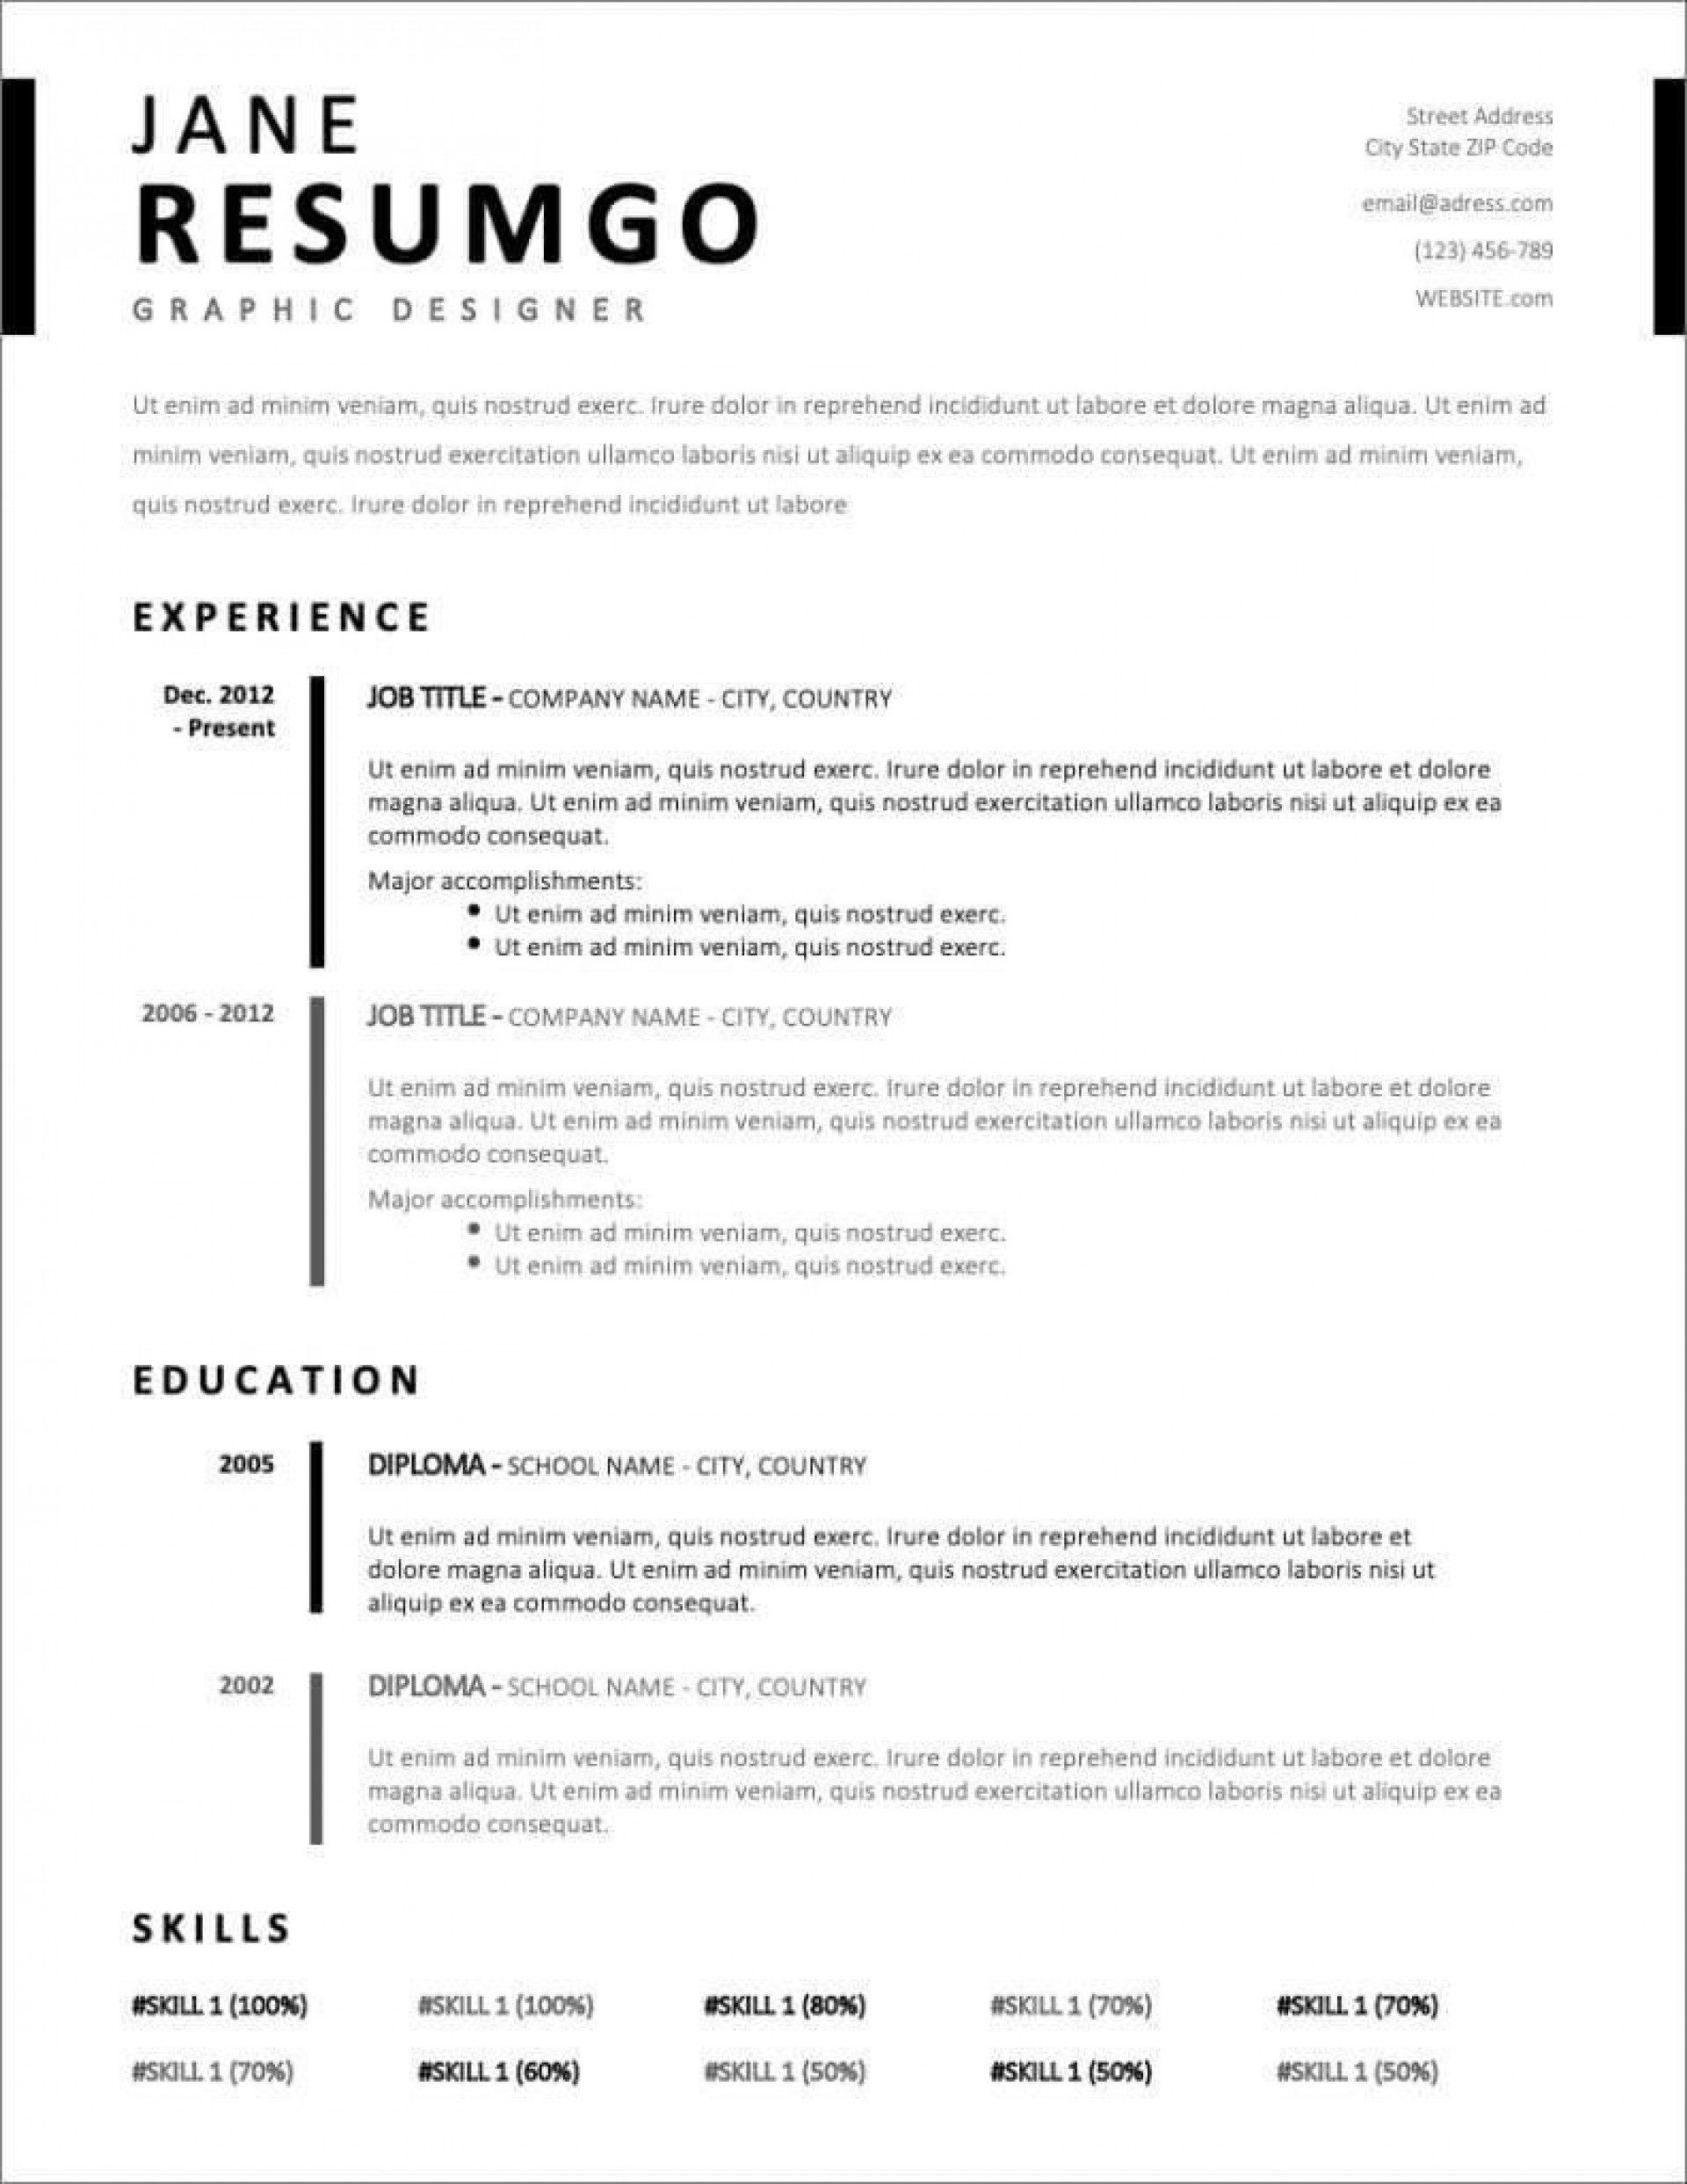 007 Shocking Create A Resume Template Free High Definition  Your Own Writing1920